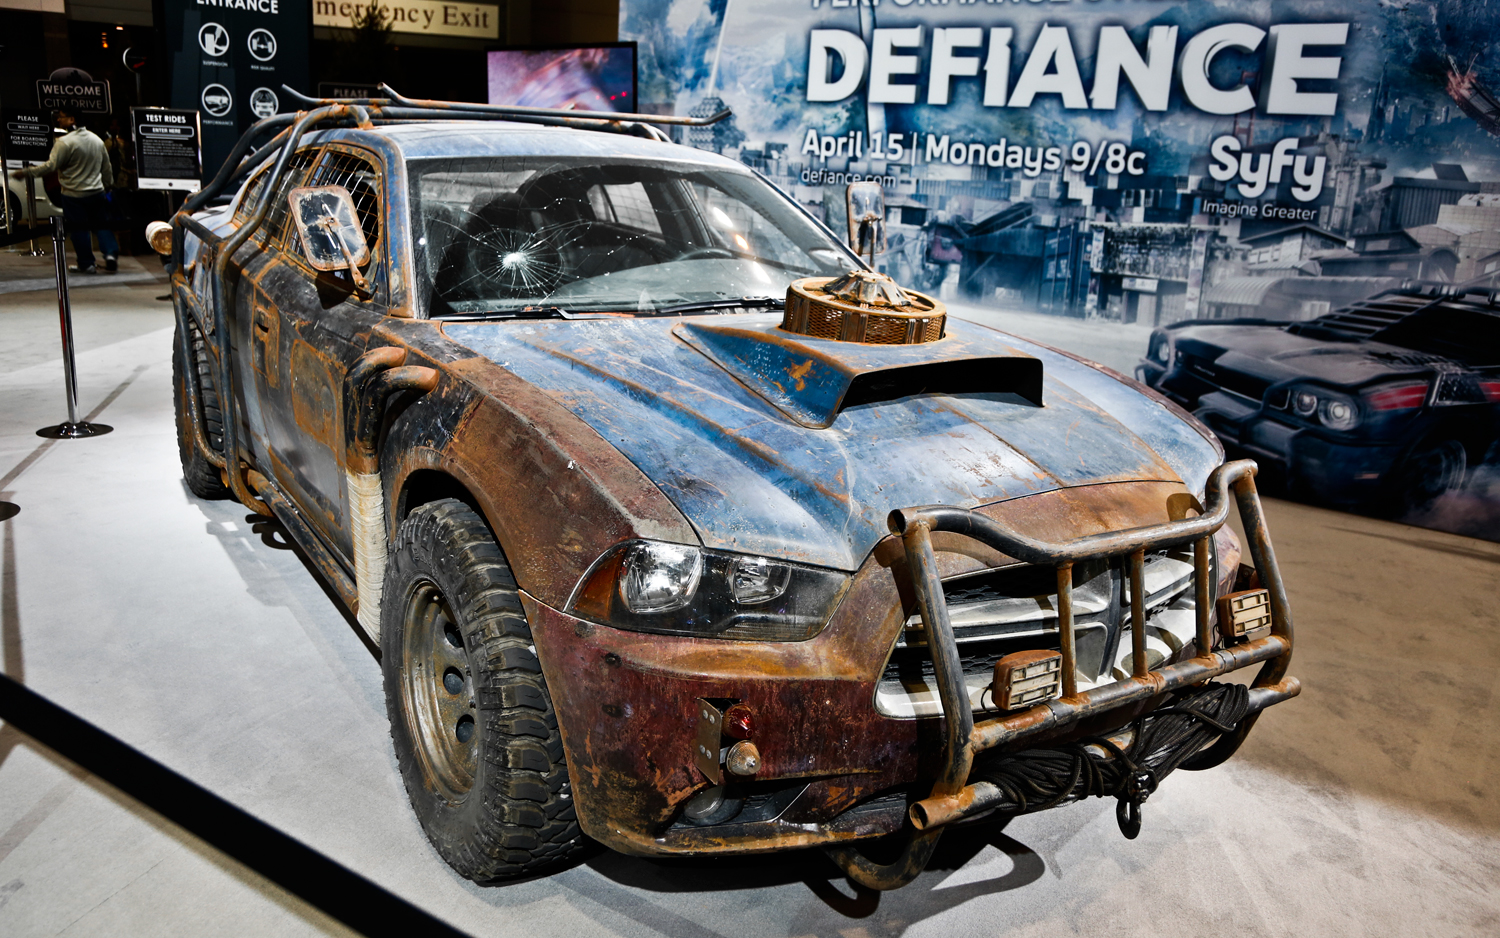 http://4.bp.blogspot.com/-avAp84-DsHc/USuy_Jf6AmI/AAAAAAAAFdc/RgCdUH_e2j0/s1600/2013-Dodge-Charger-Defiance-car-front-right-view.jpg